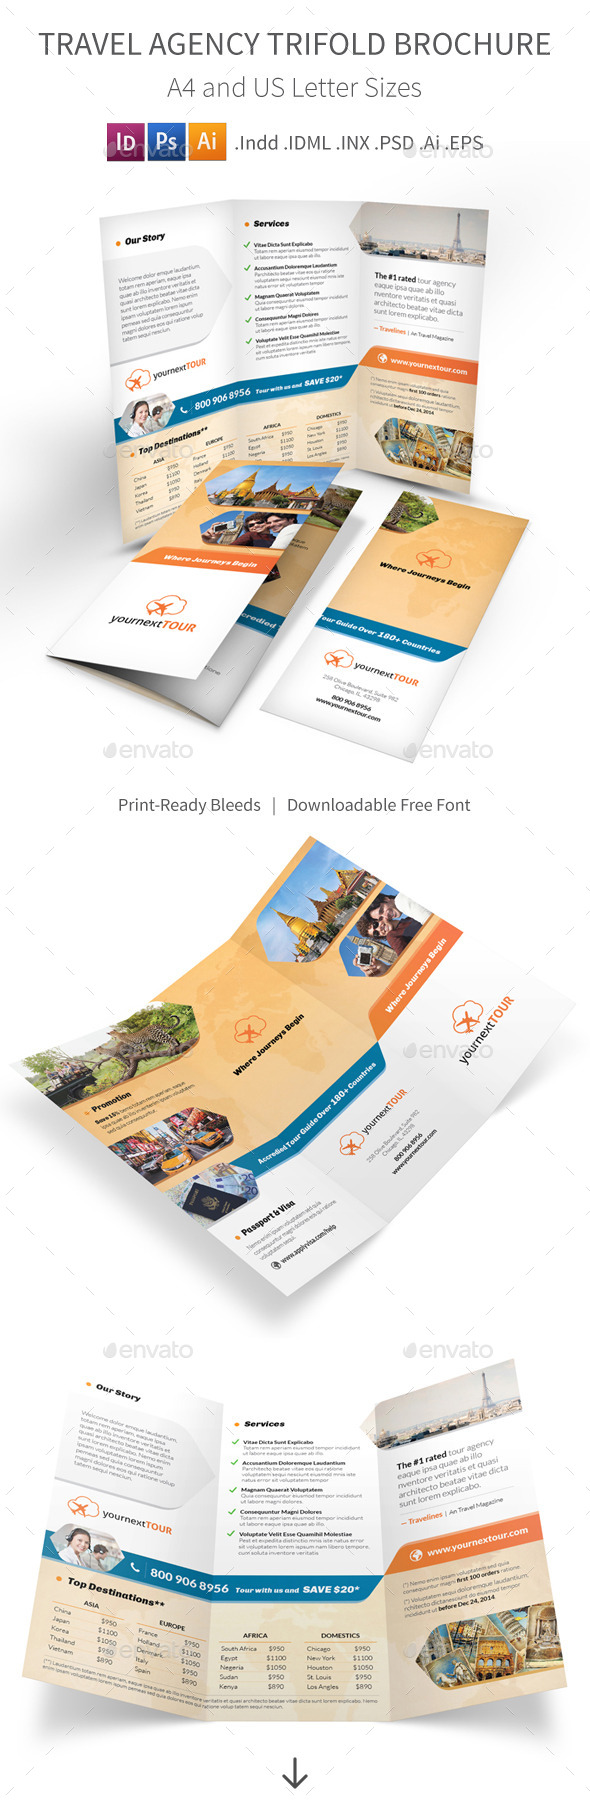 GraphicRiver Travel Agency Trifold Brochure 9662810